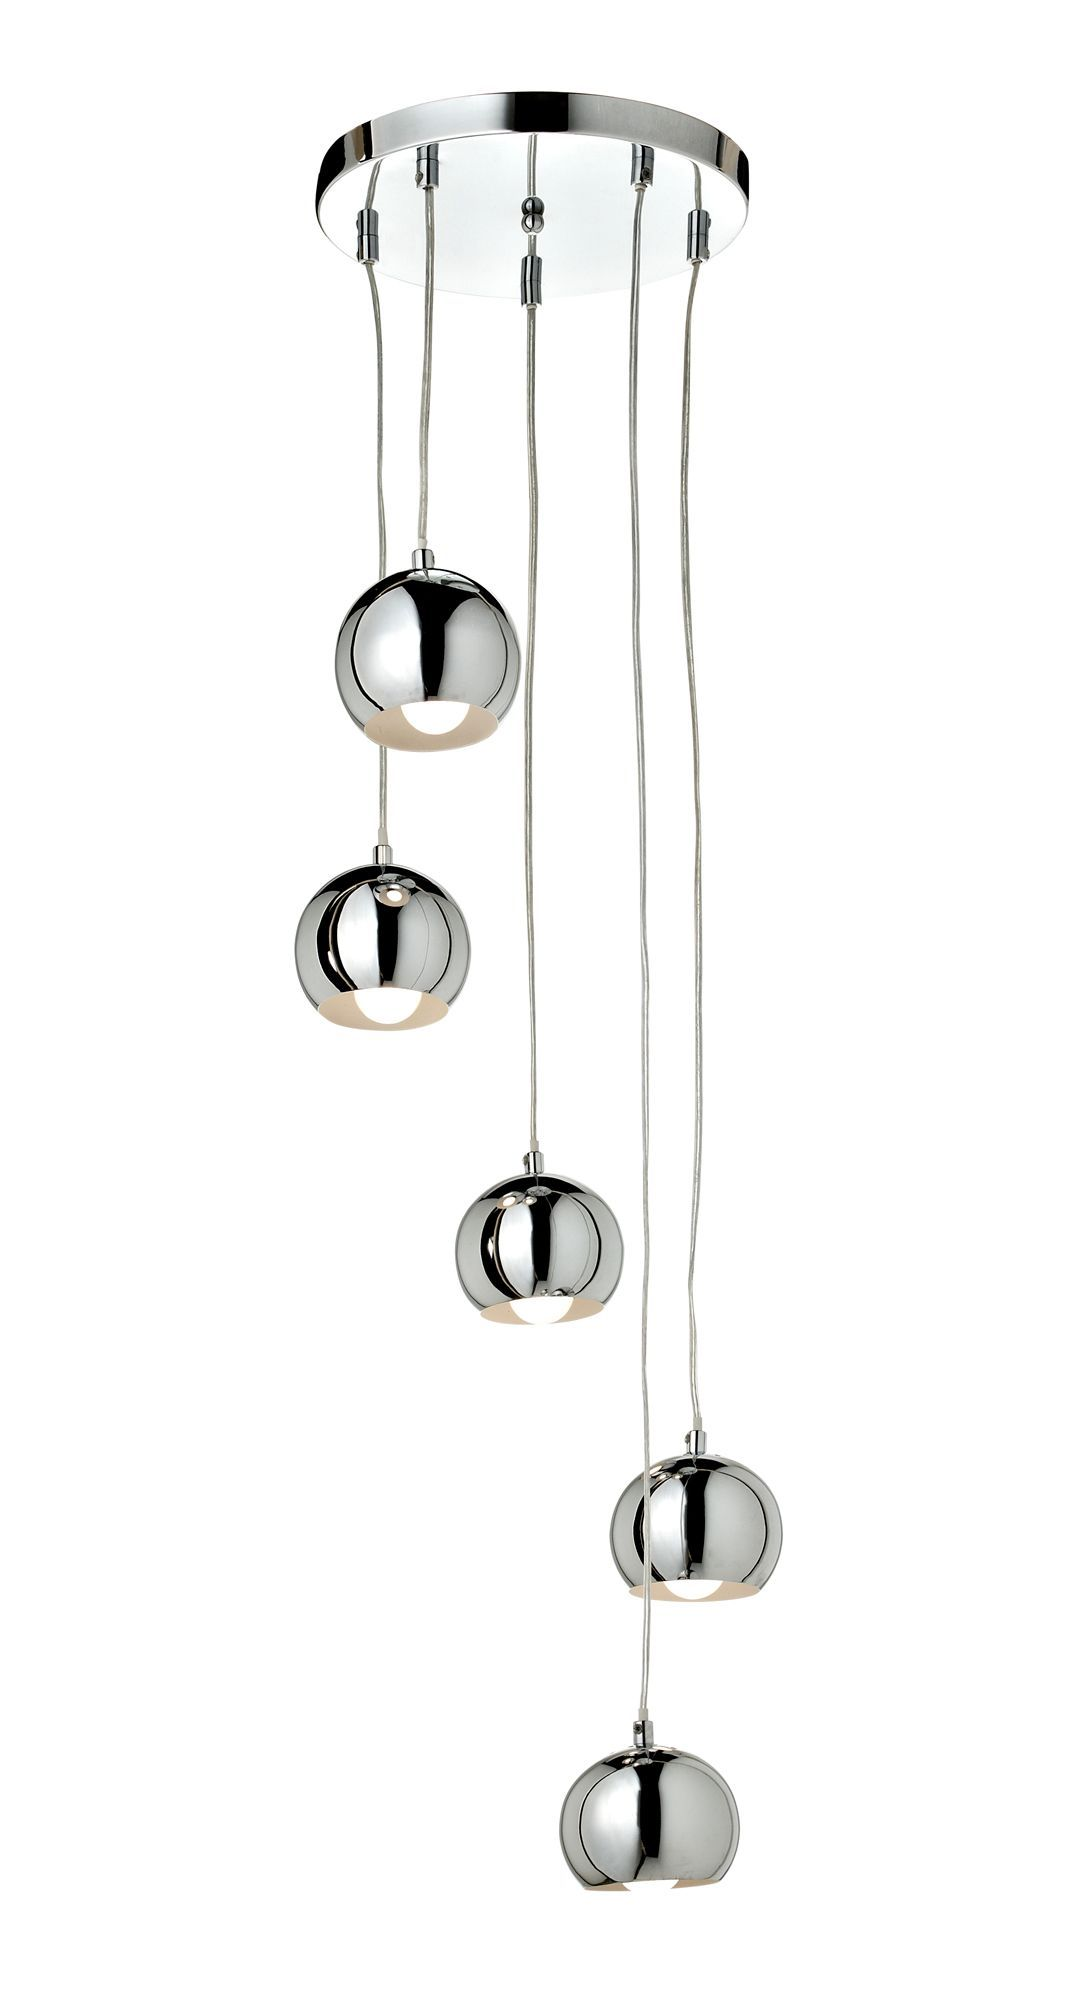 Cascade chrome effect 5 lamp ceiling light ceiling chrome and cascade chrome effect 5 lamp ceiling light departments diy at bq mozeypictures Images